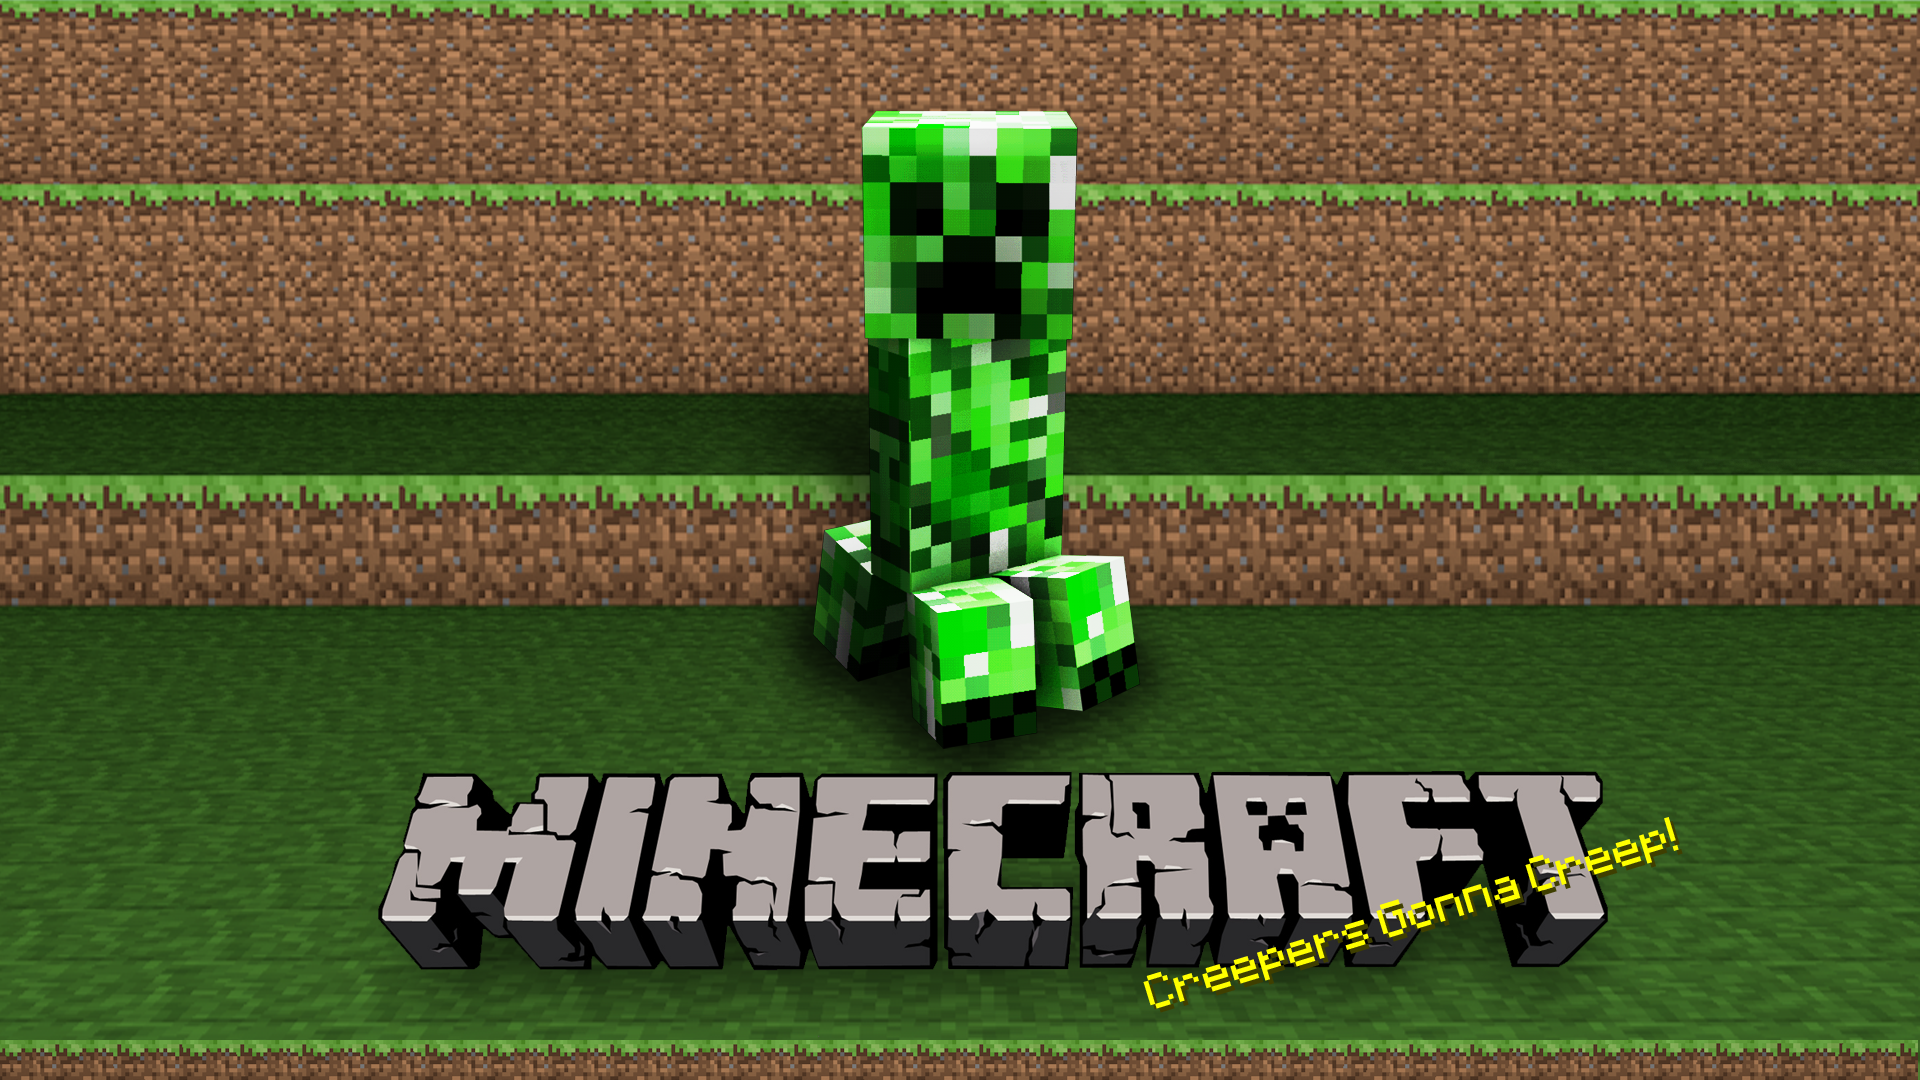 creepers gonna creep!